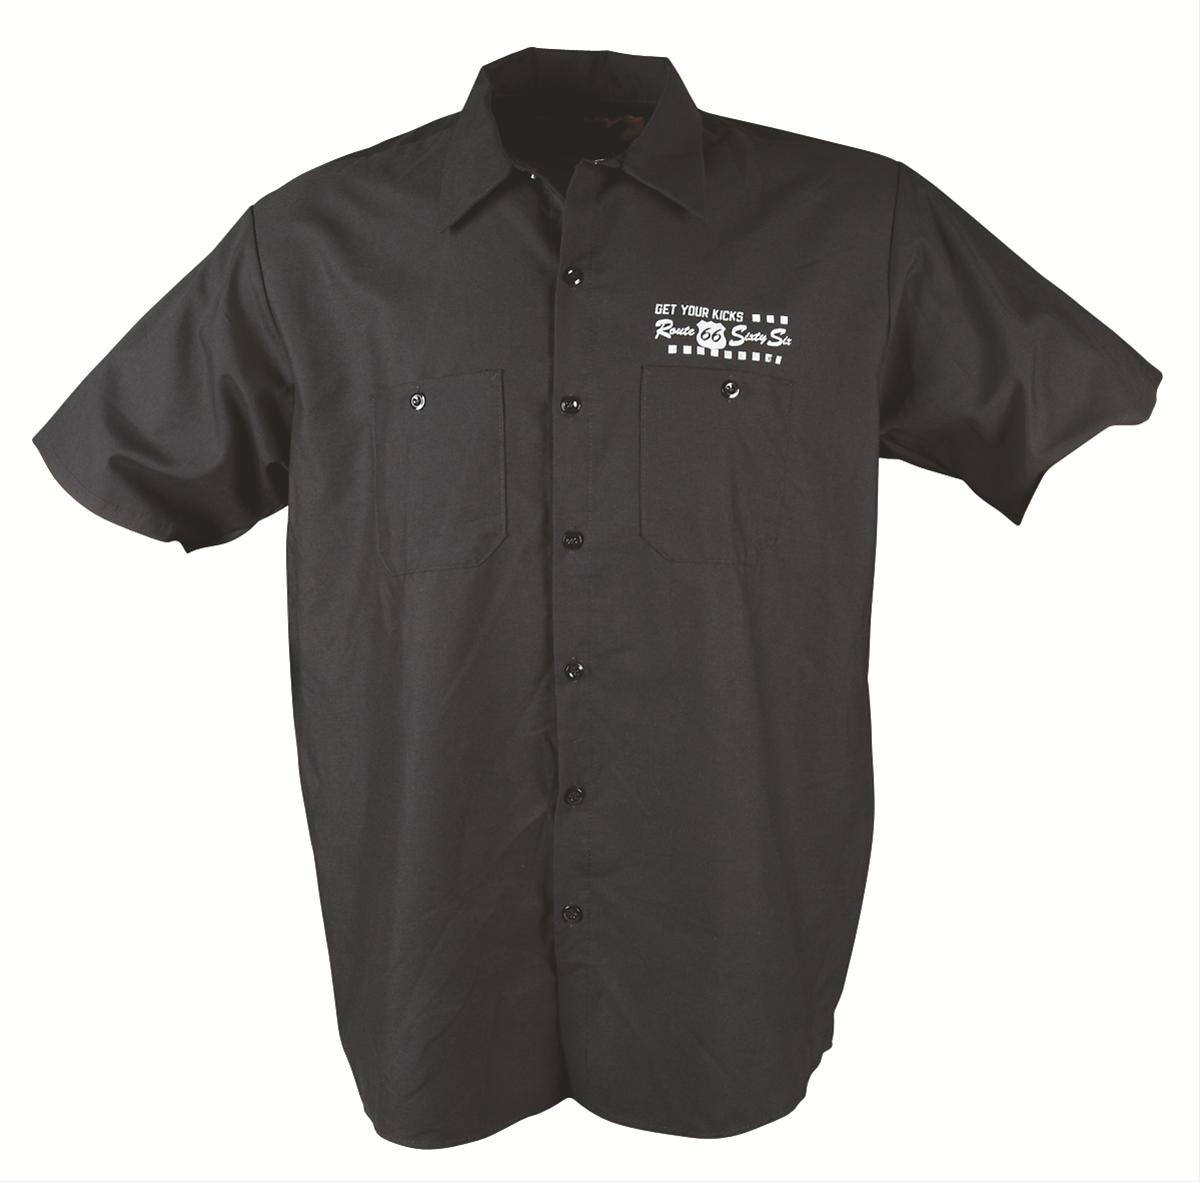 Ghh work shirt button down cotton polyester black route 66 for Polyester button up shirt